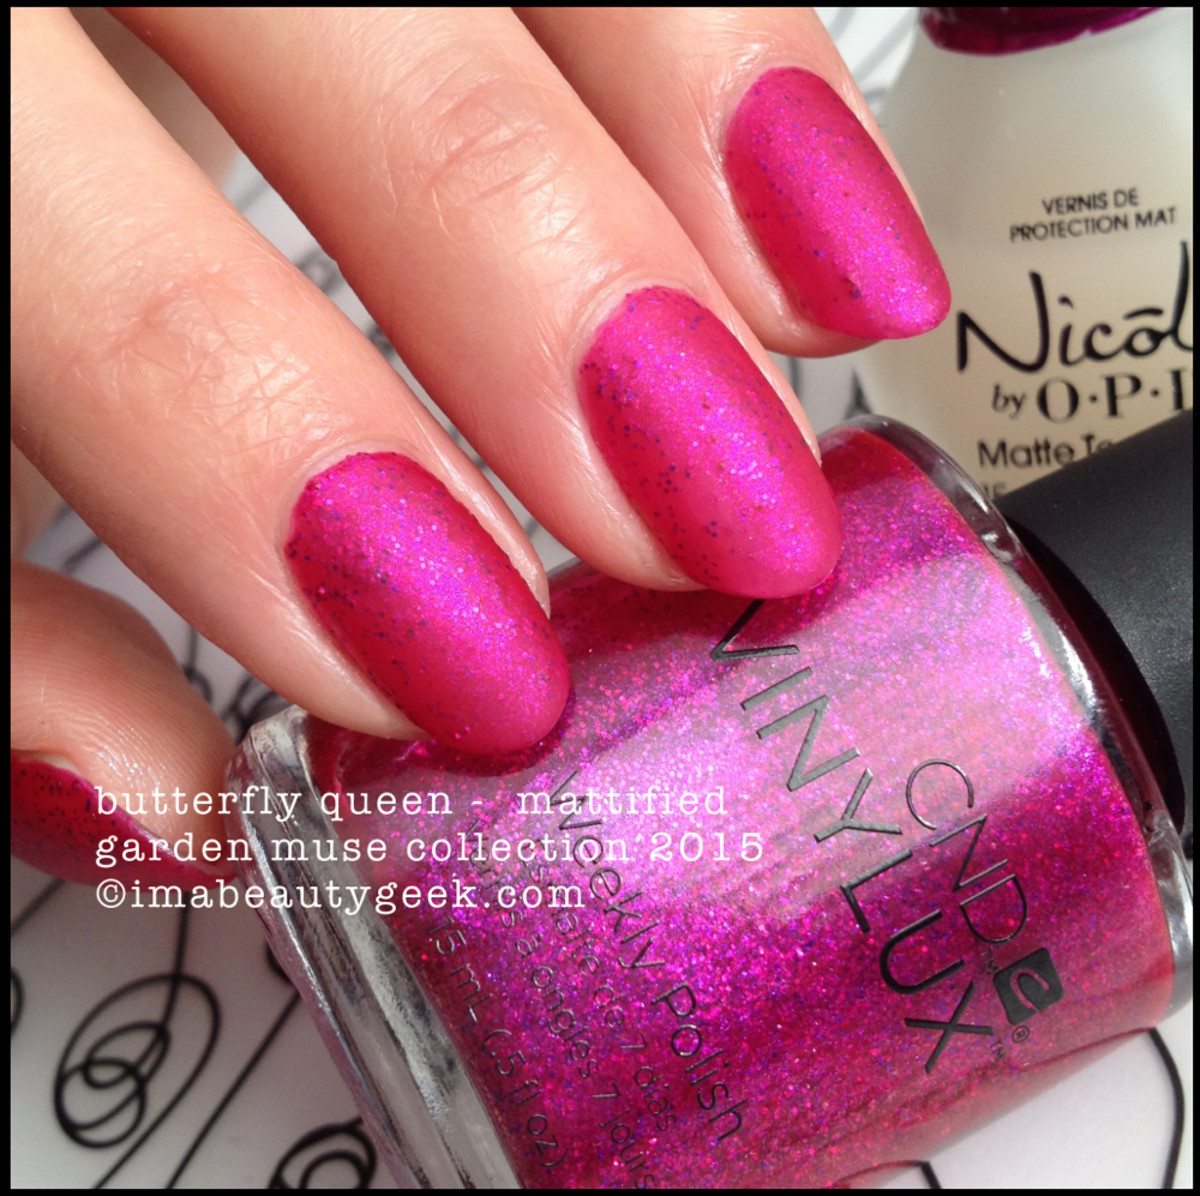 CND Vinylux Butterfly Queen_Garden Muse Collection 2015